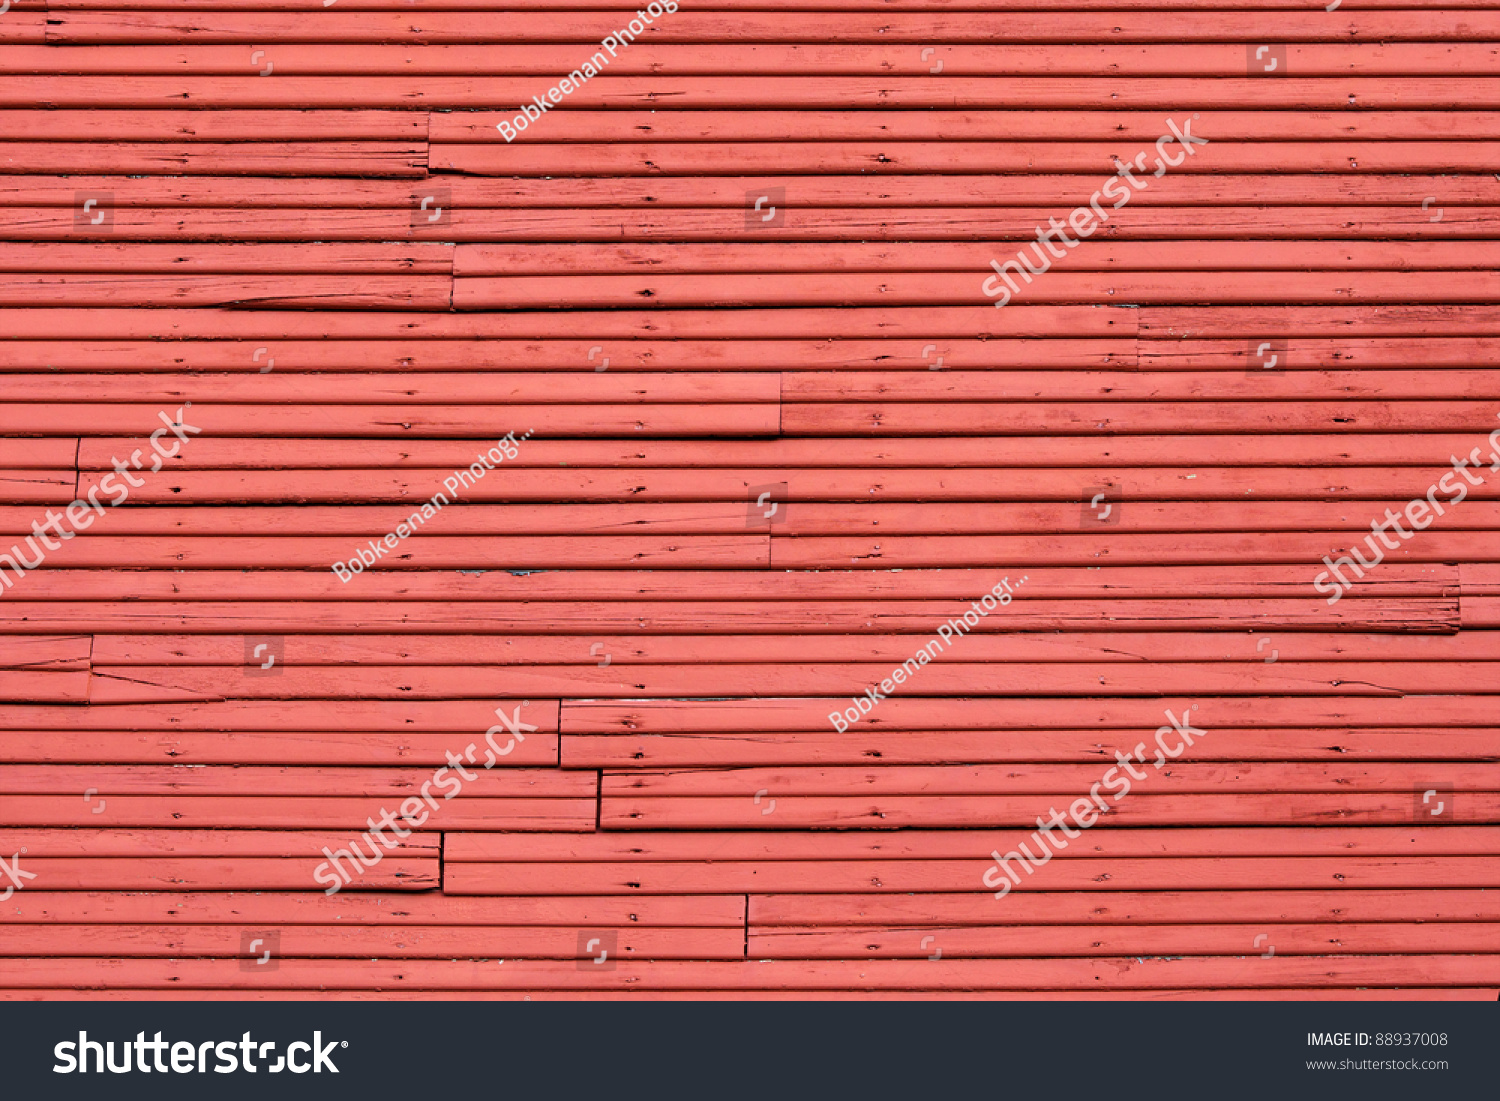 Wood Slat Wall old wood slat wall painted red stock photo 88937008 - shutterstock